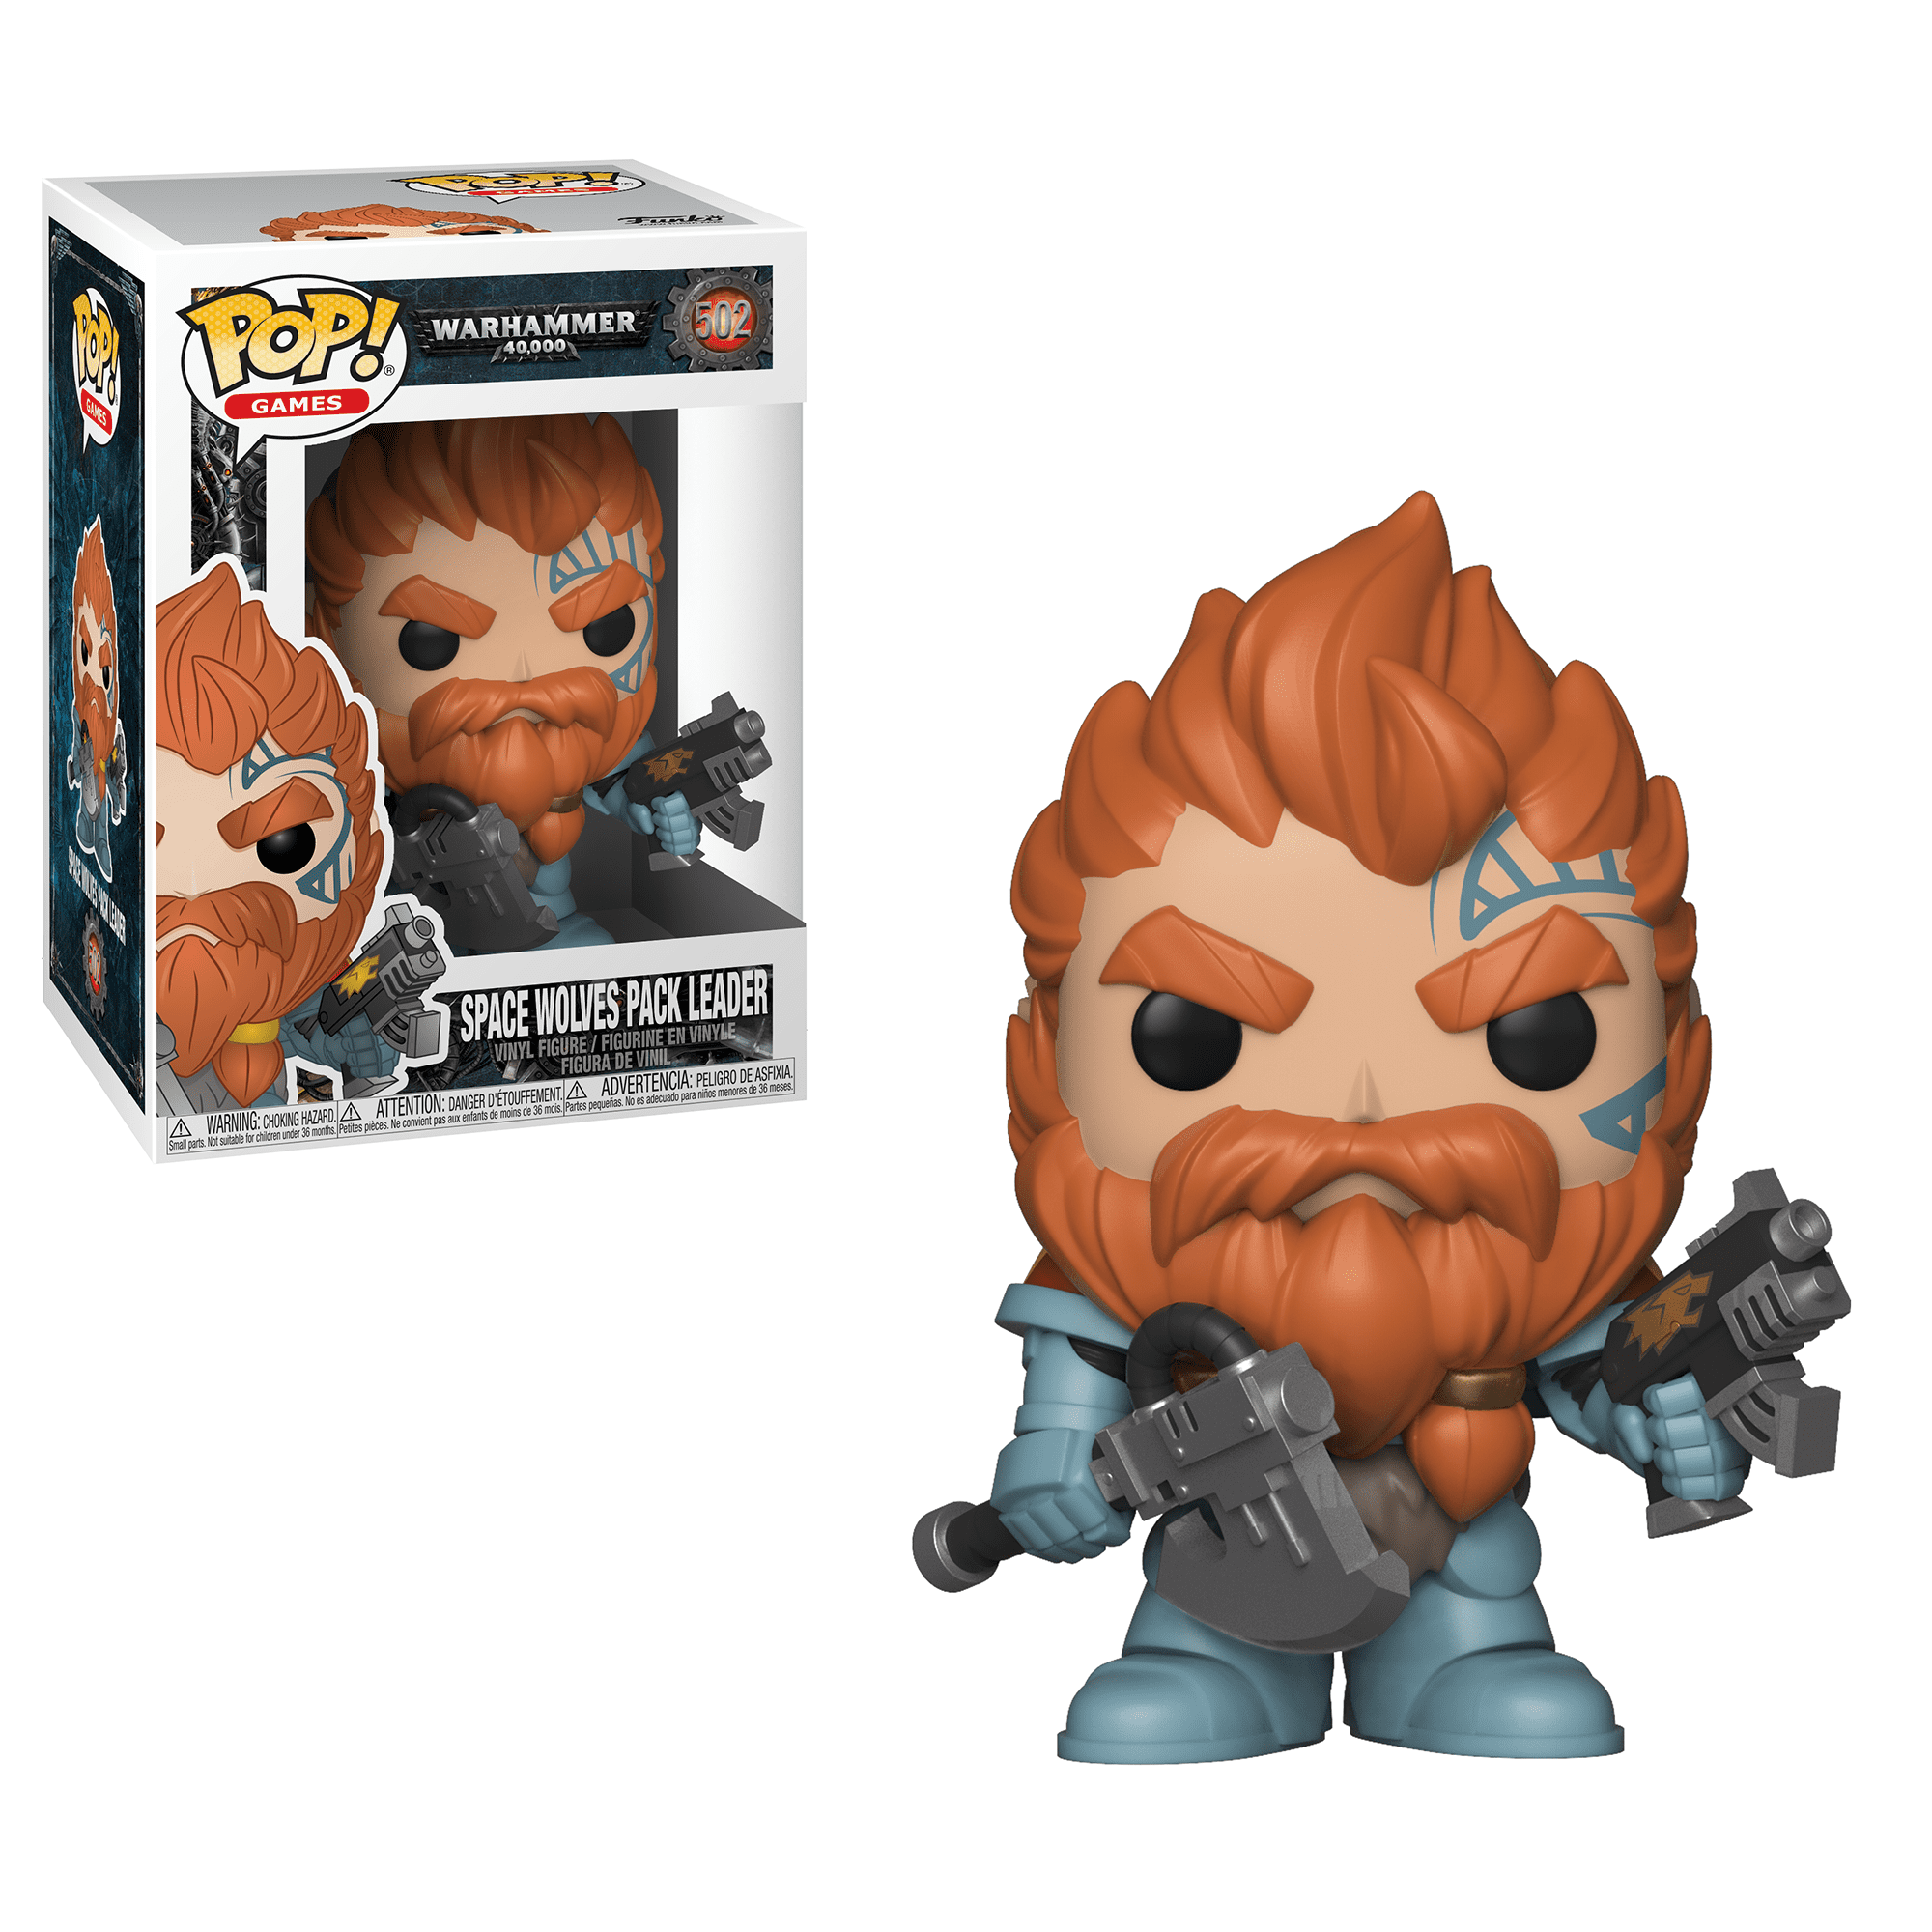 Click here to buy Funko POP! Games: Warhammer 40K Space Wolves Pack Leader by Funko.